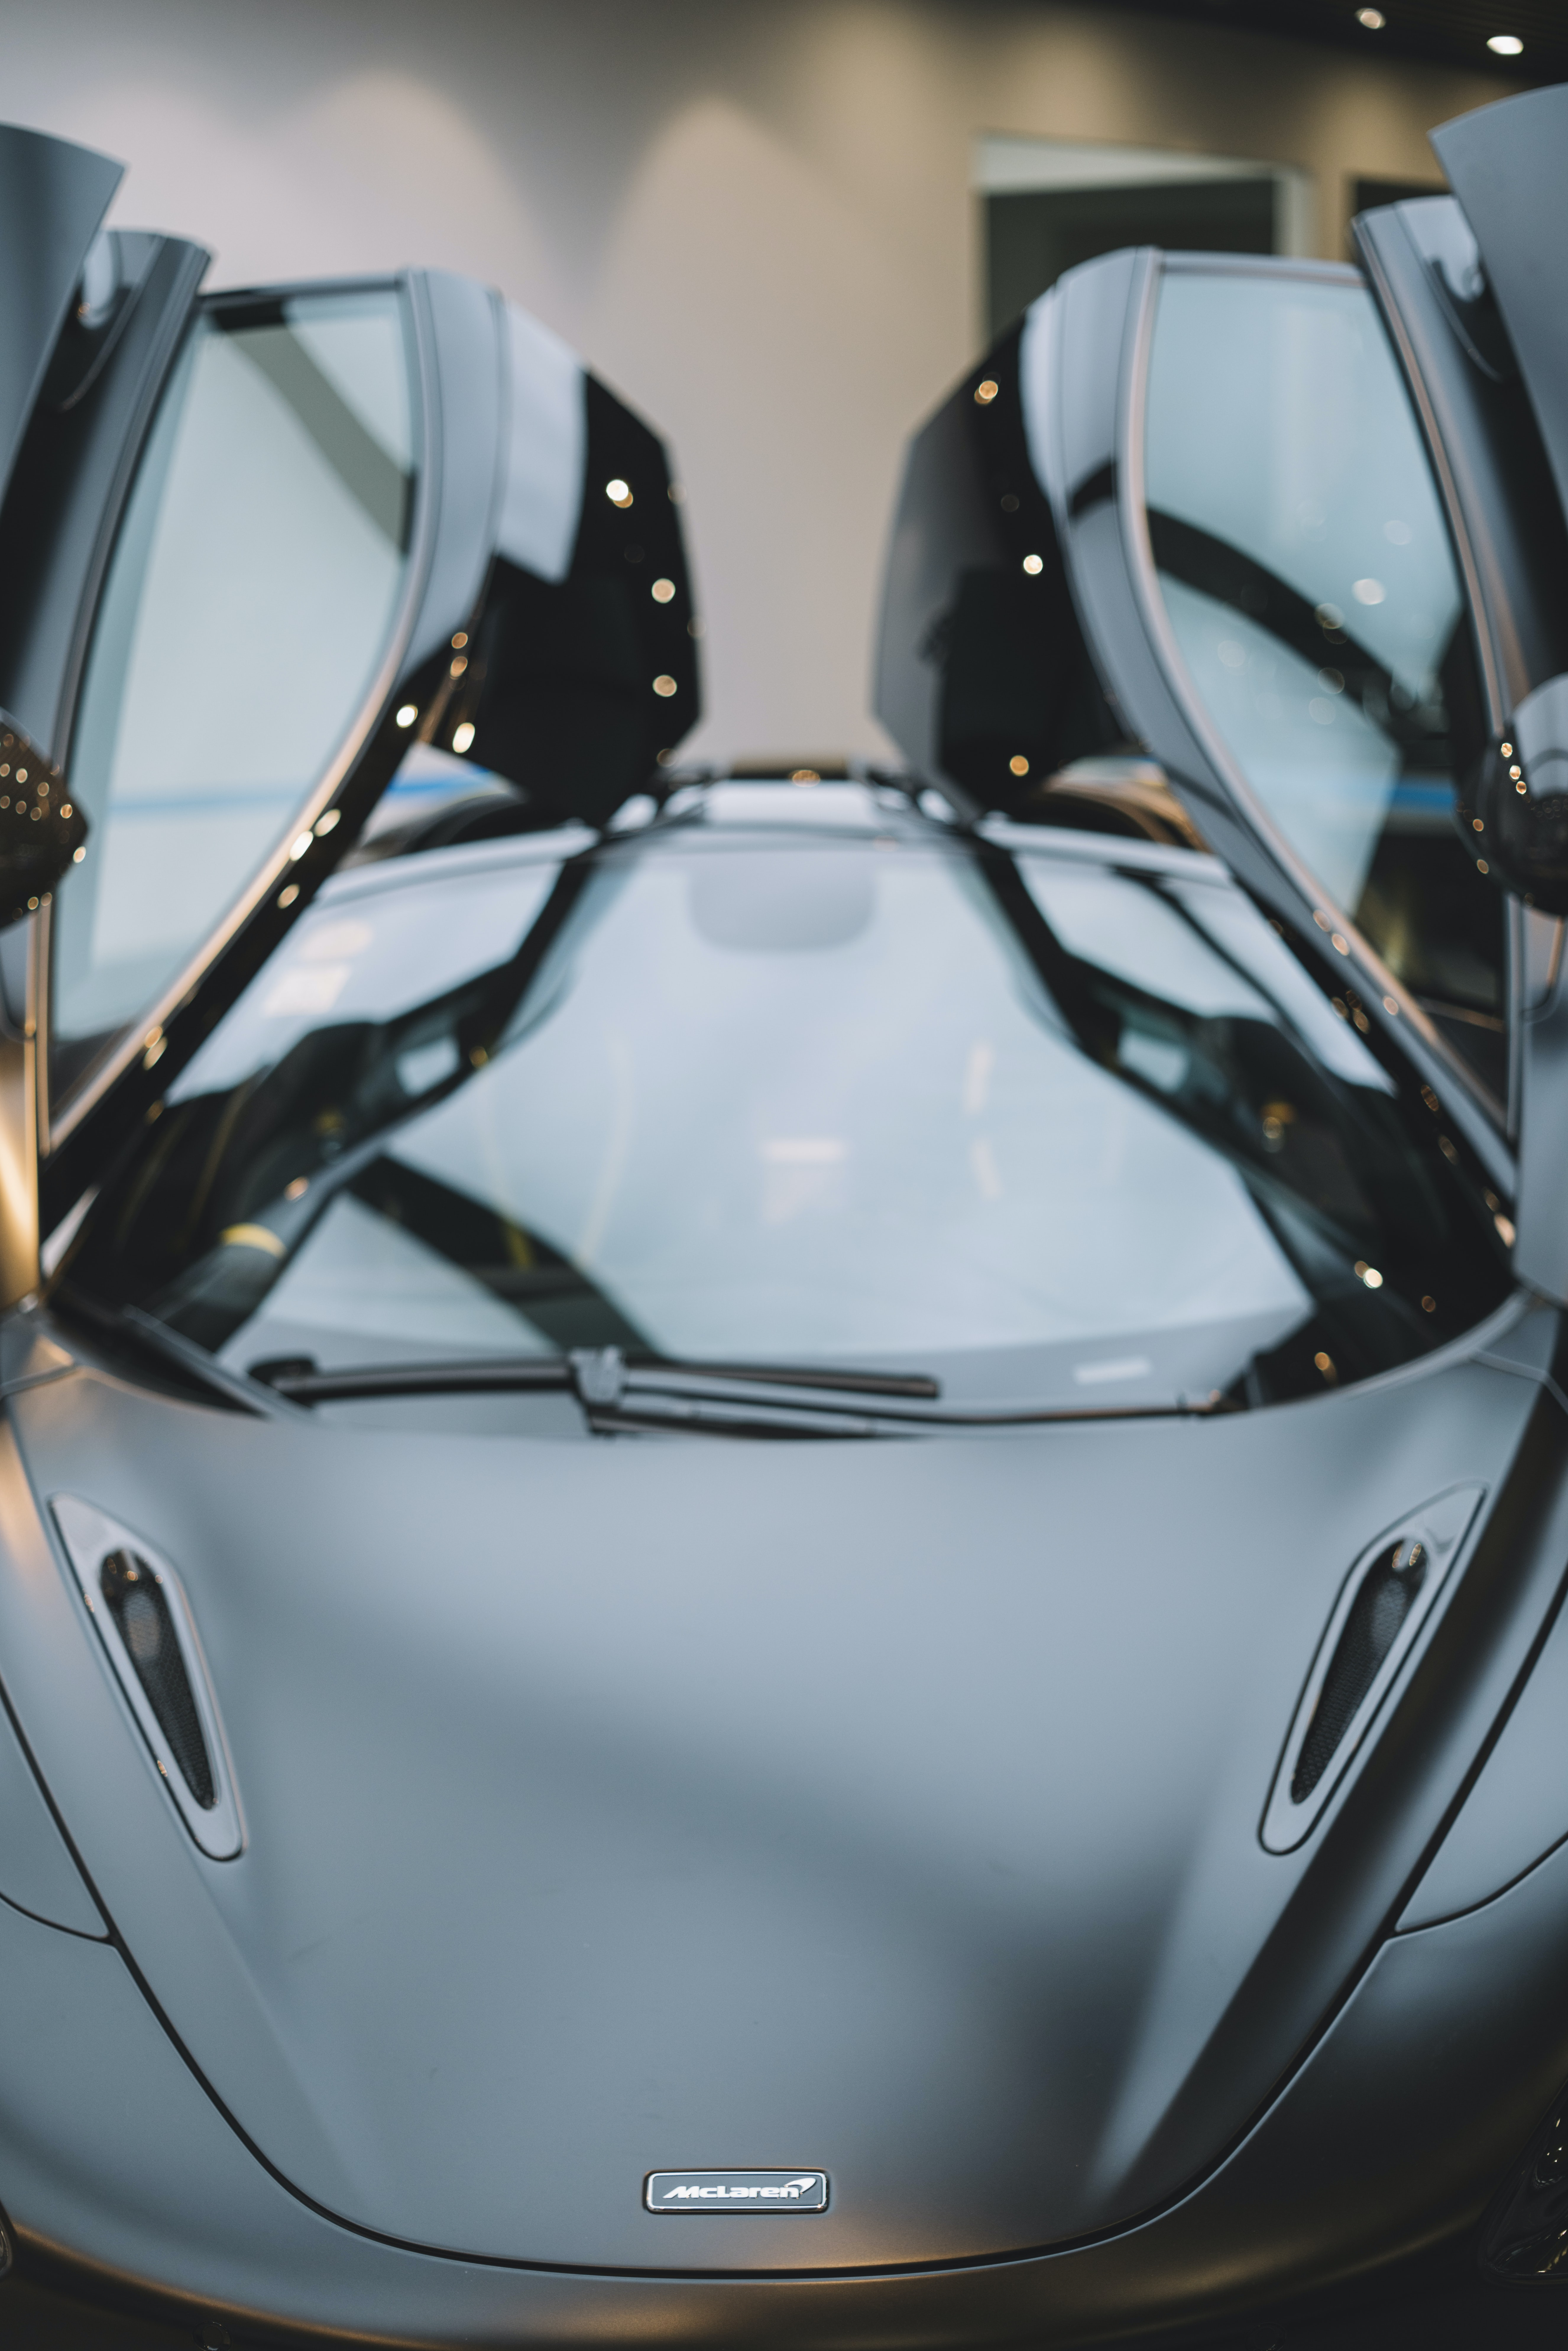 500 Fast Car Pictures Download Free Images On Unsplash